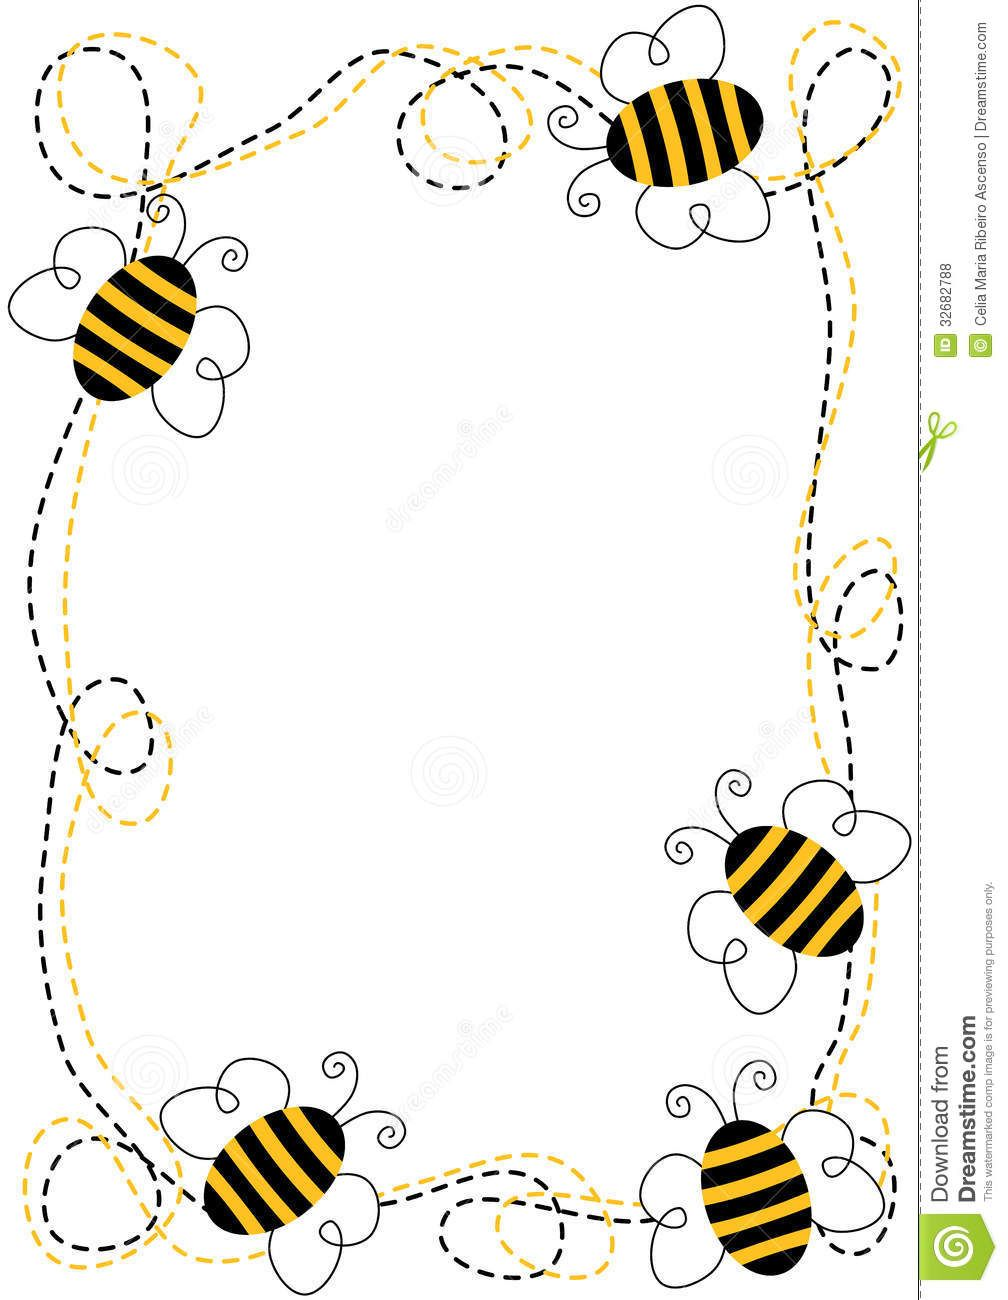 Flying download from over. Bees clipart frame